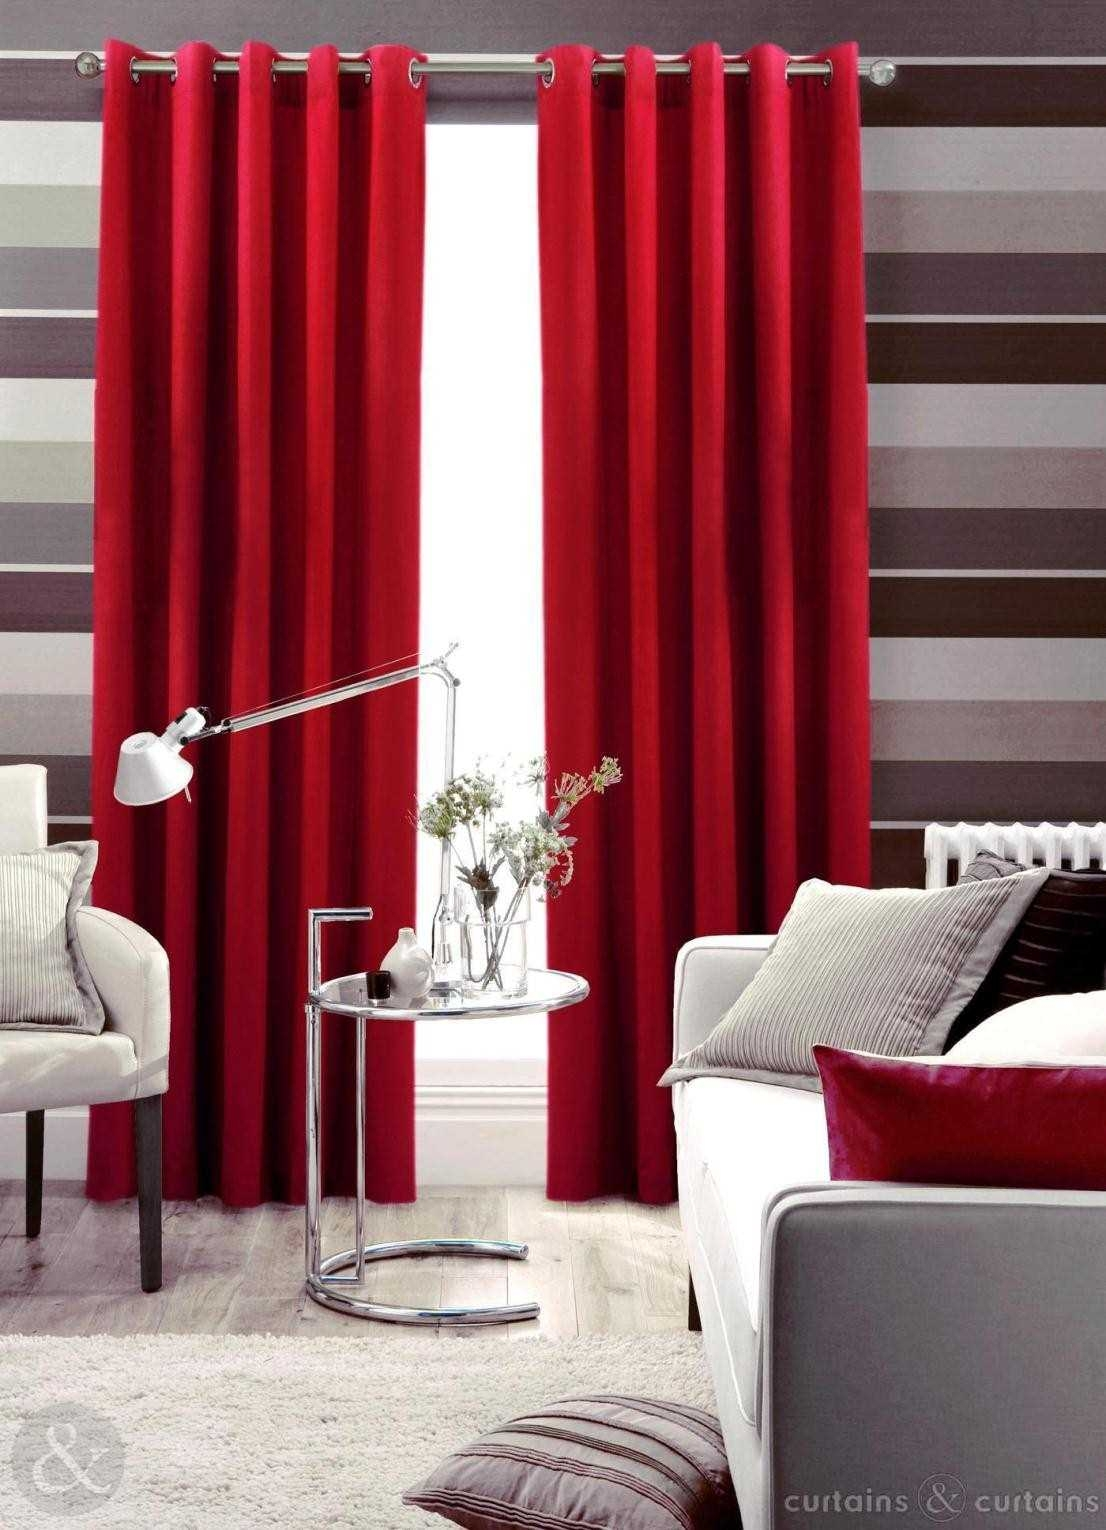 Red patterned curtains living room - Colorful Curtains Red Patterned Curtains Living Room Free Image With Dark Red Velvet Curtains Image